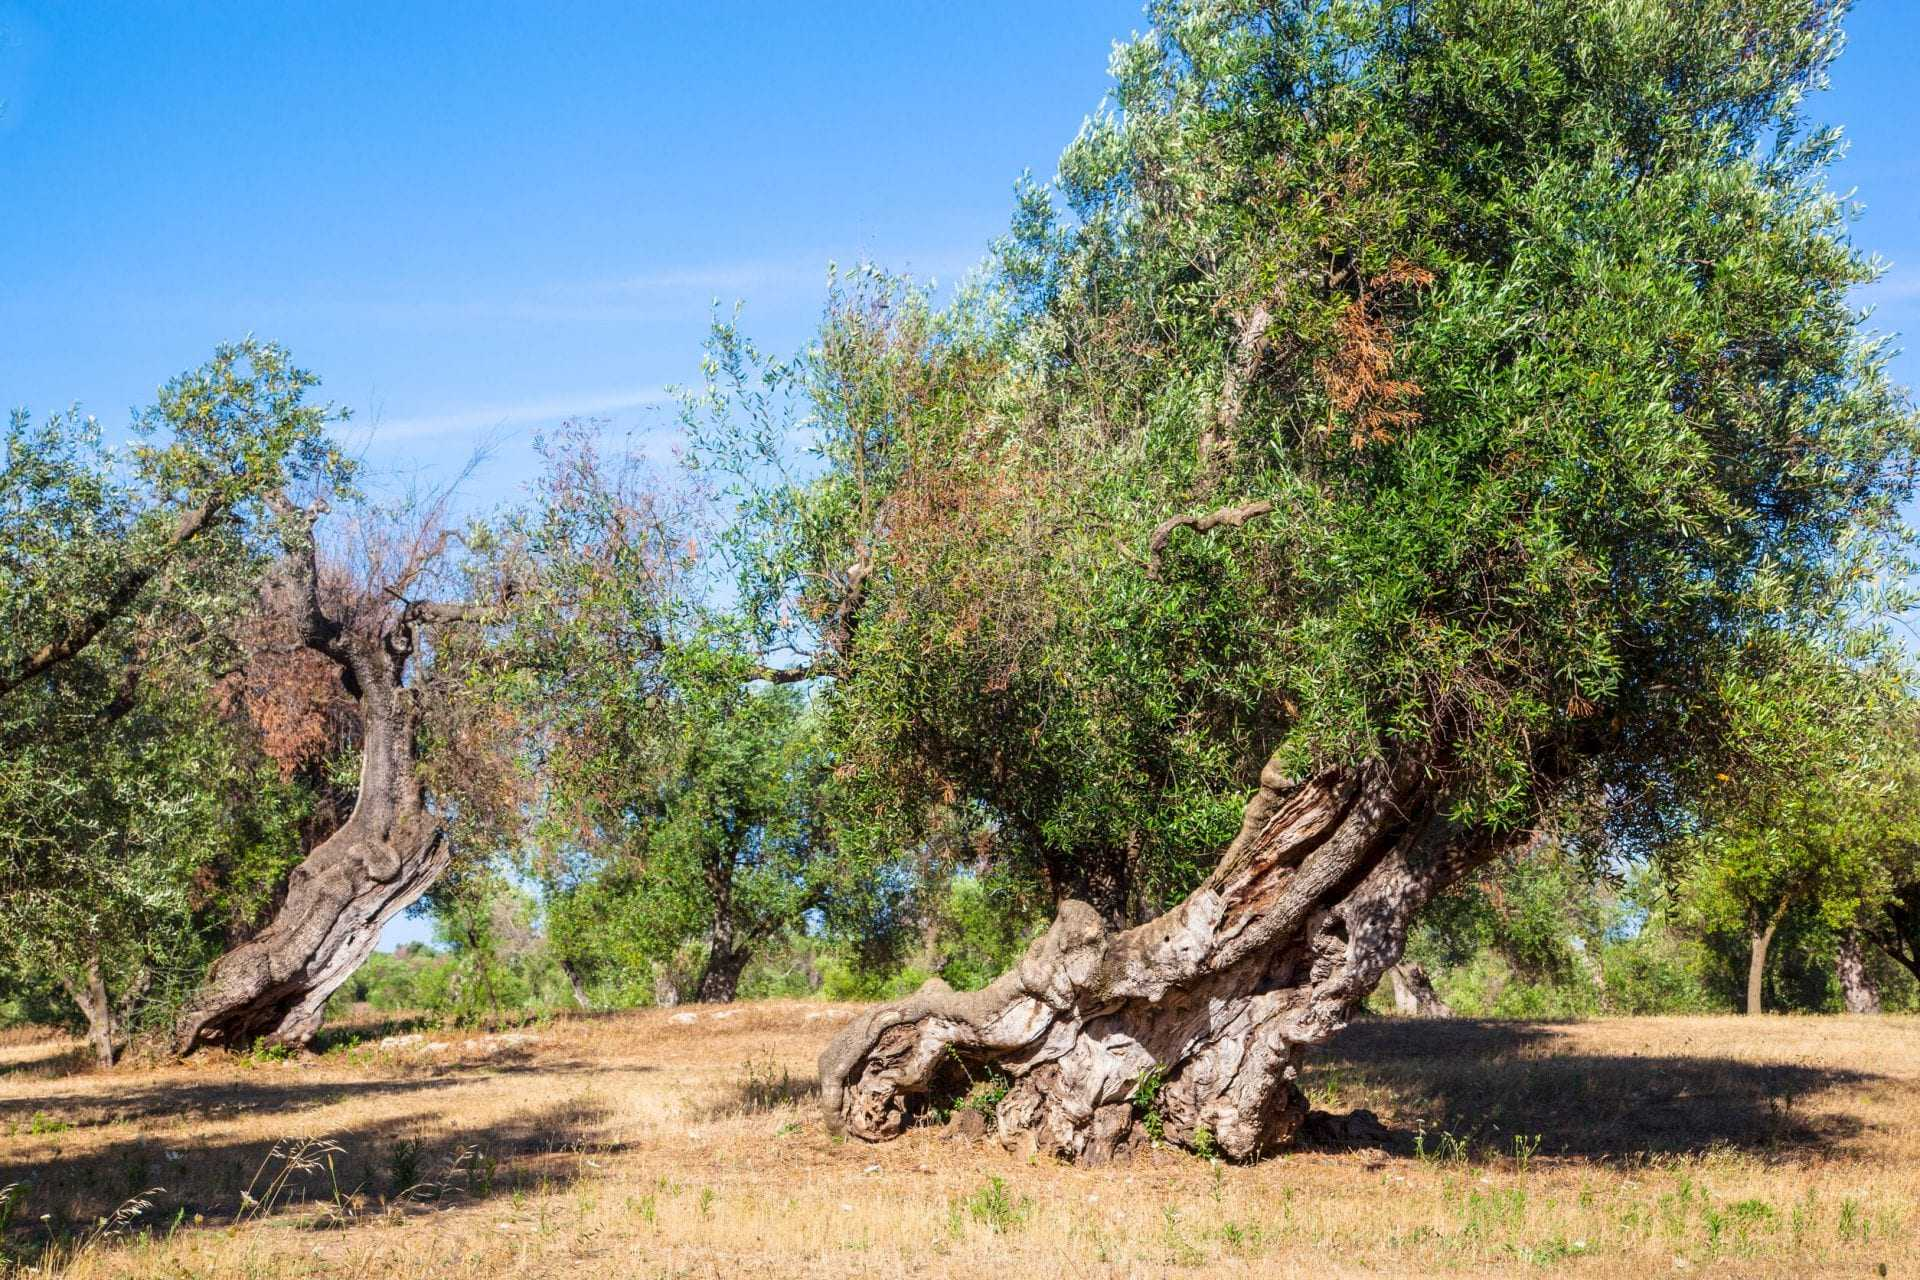 xylella-update-spread-continues-in-southern-italy-amid-calls-for-swift-action-olive-oil-times